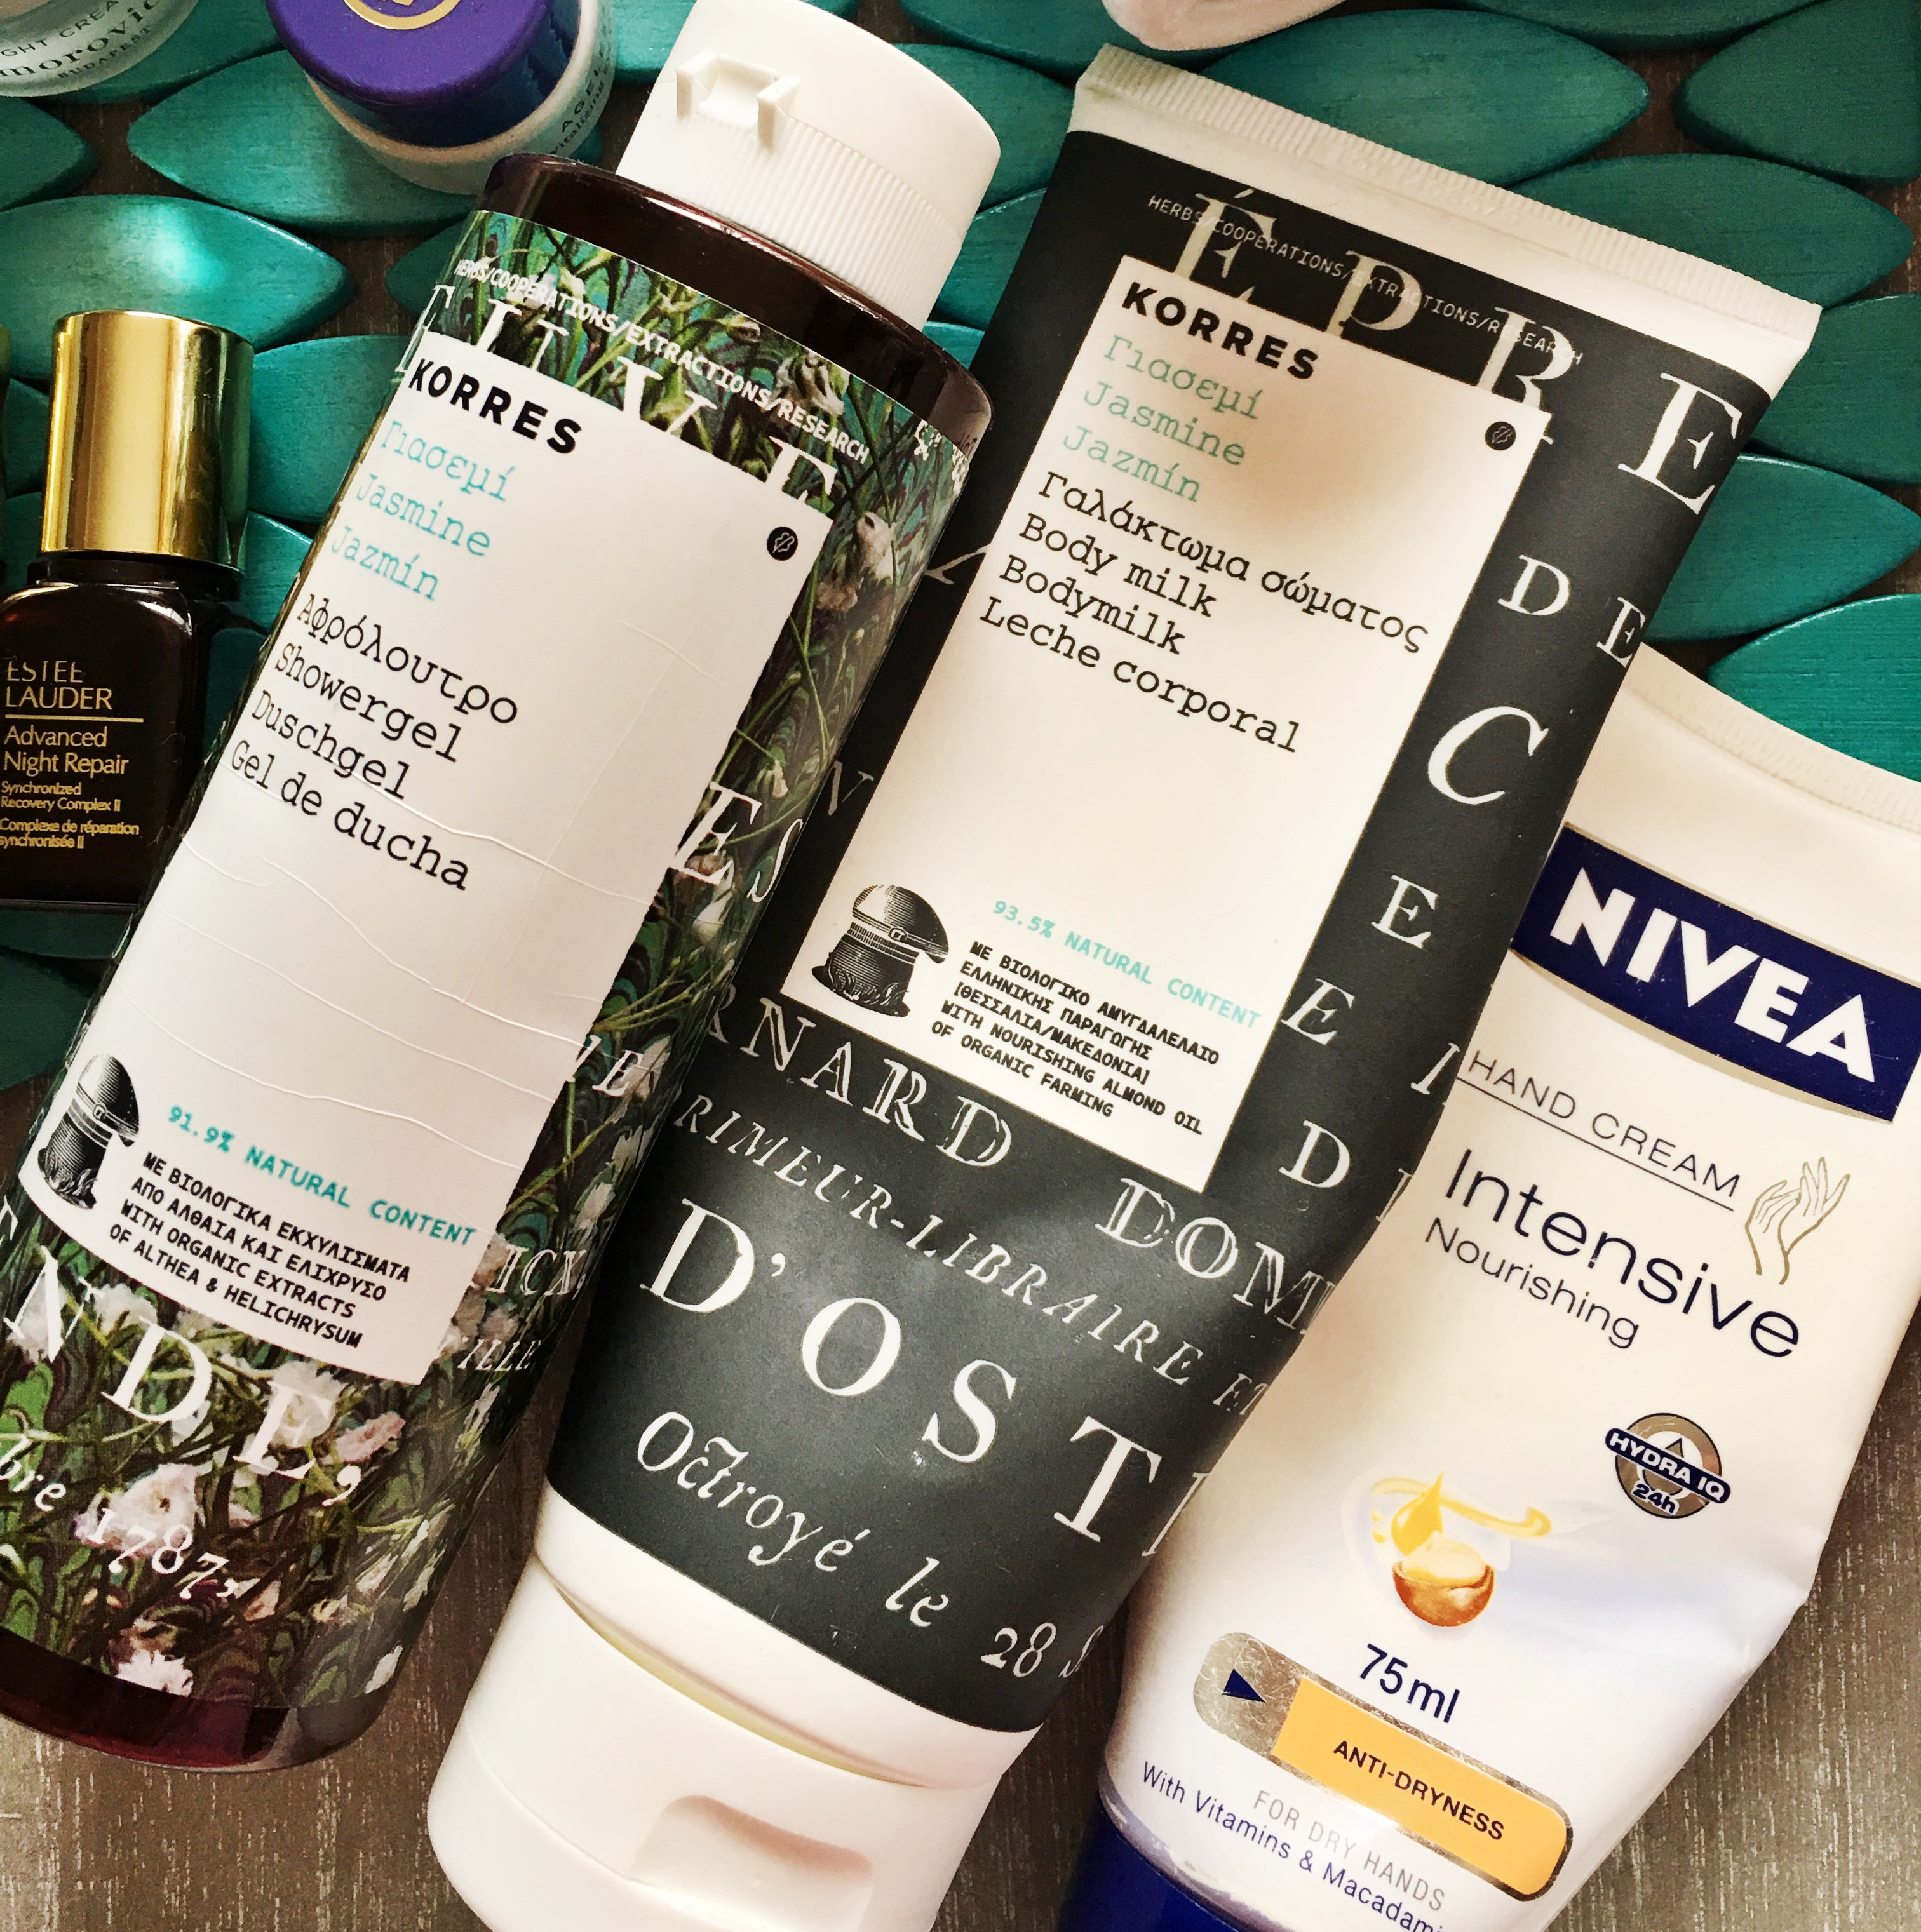 Korres Jasmine Showergel and BodyMilk and Nivea Intensive Nourishing Hand Cream